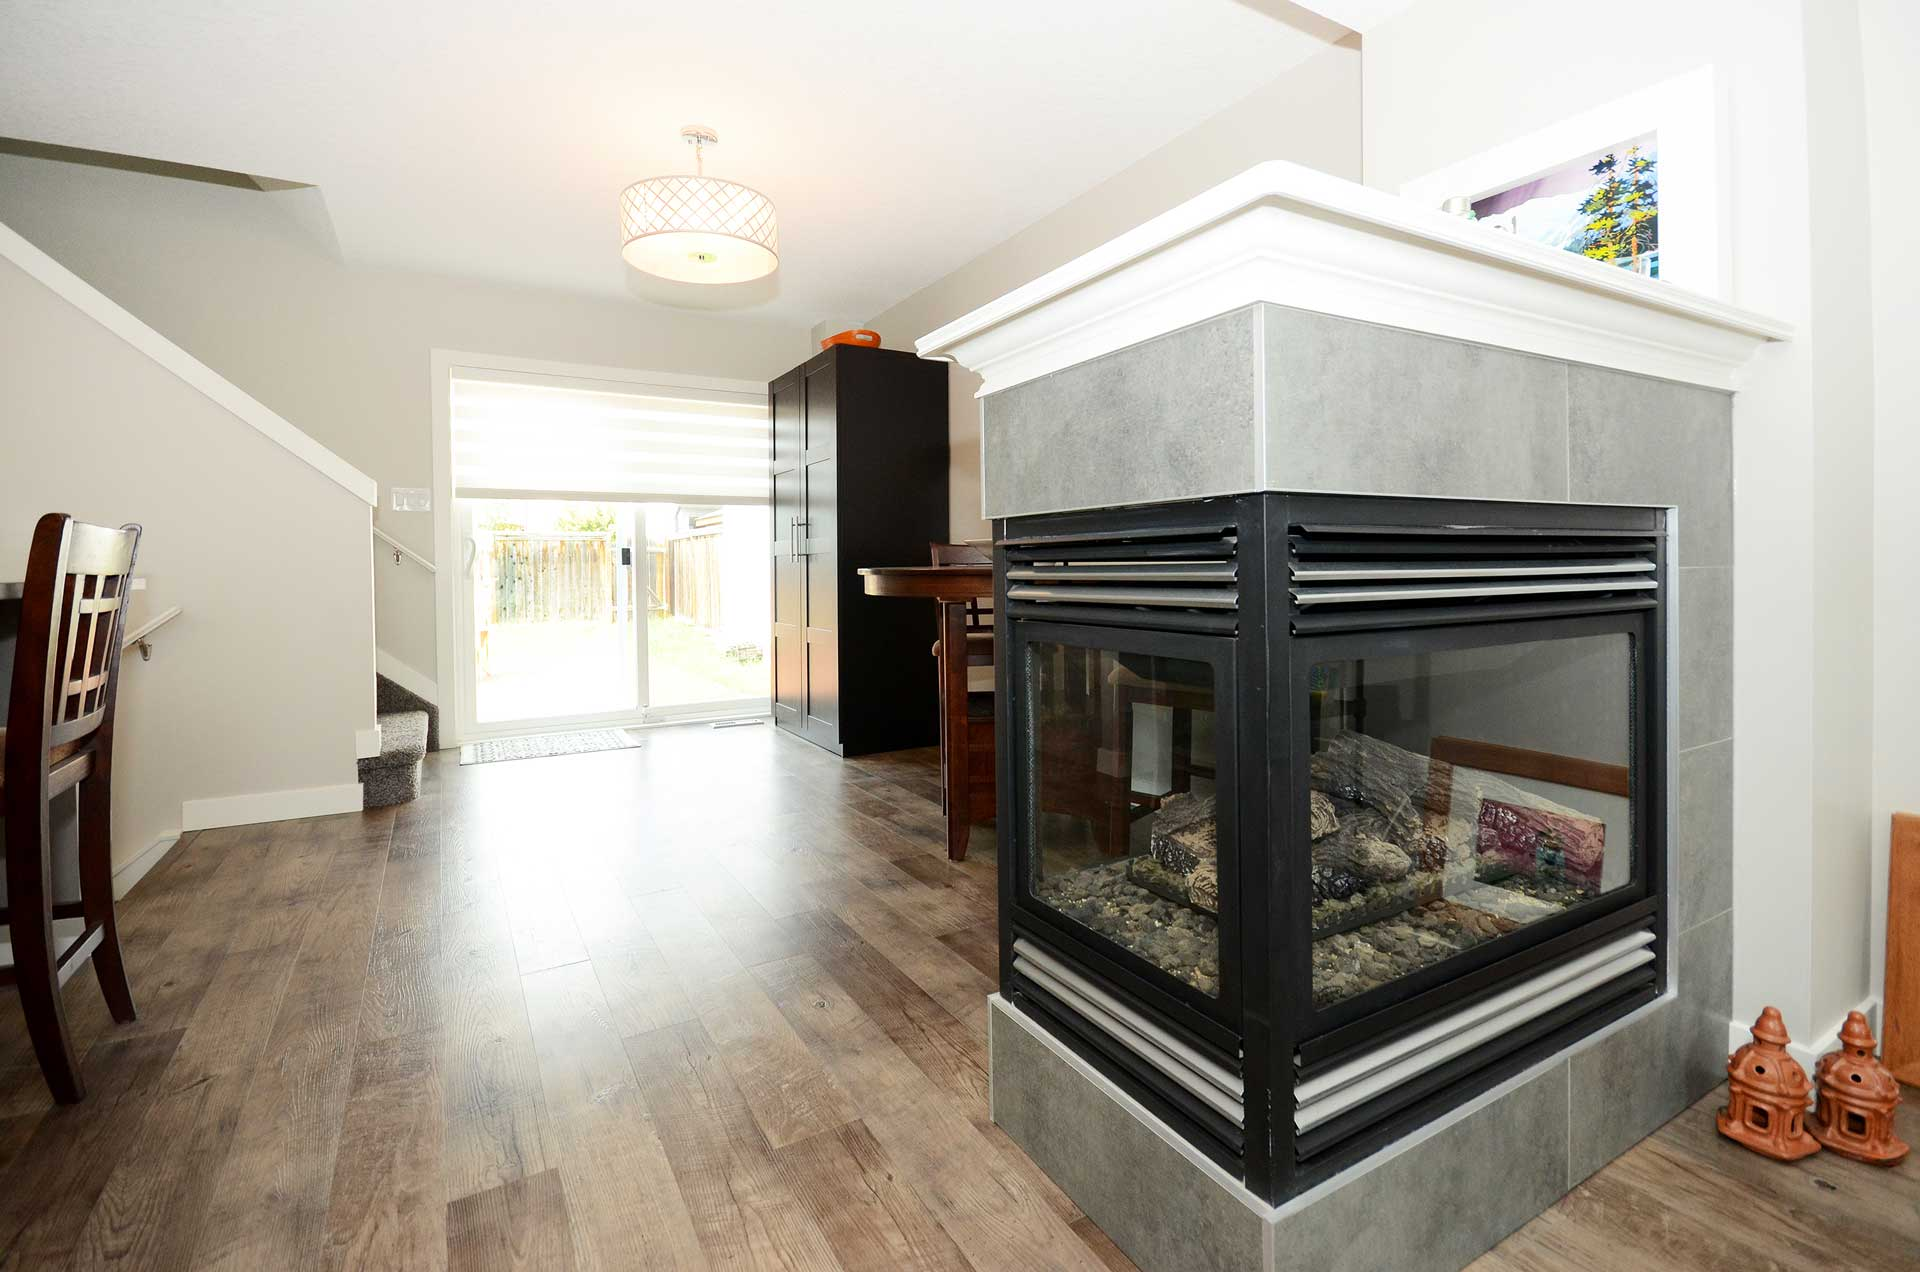 Residential Remodeling and Designing Services